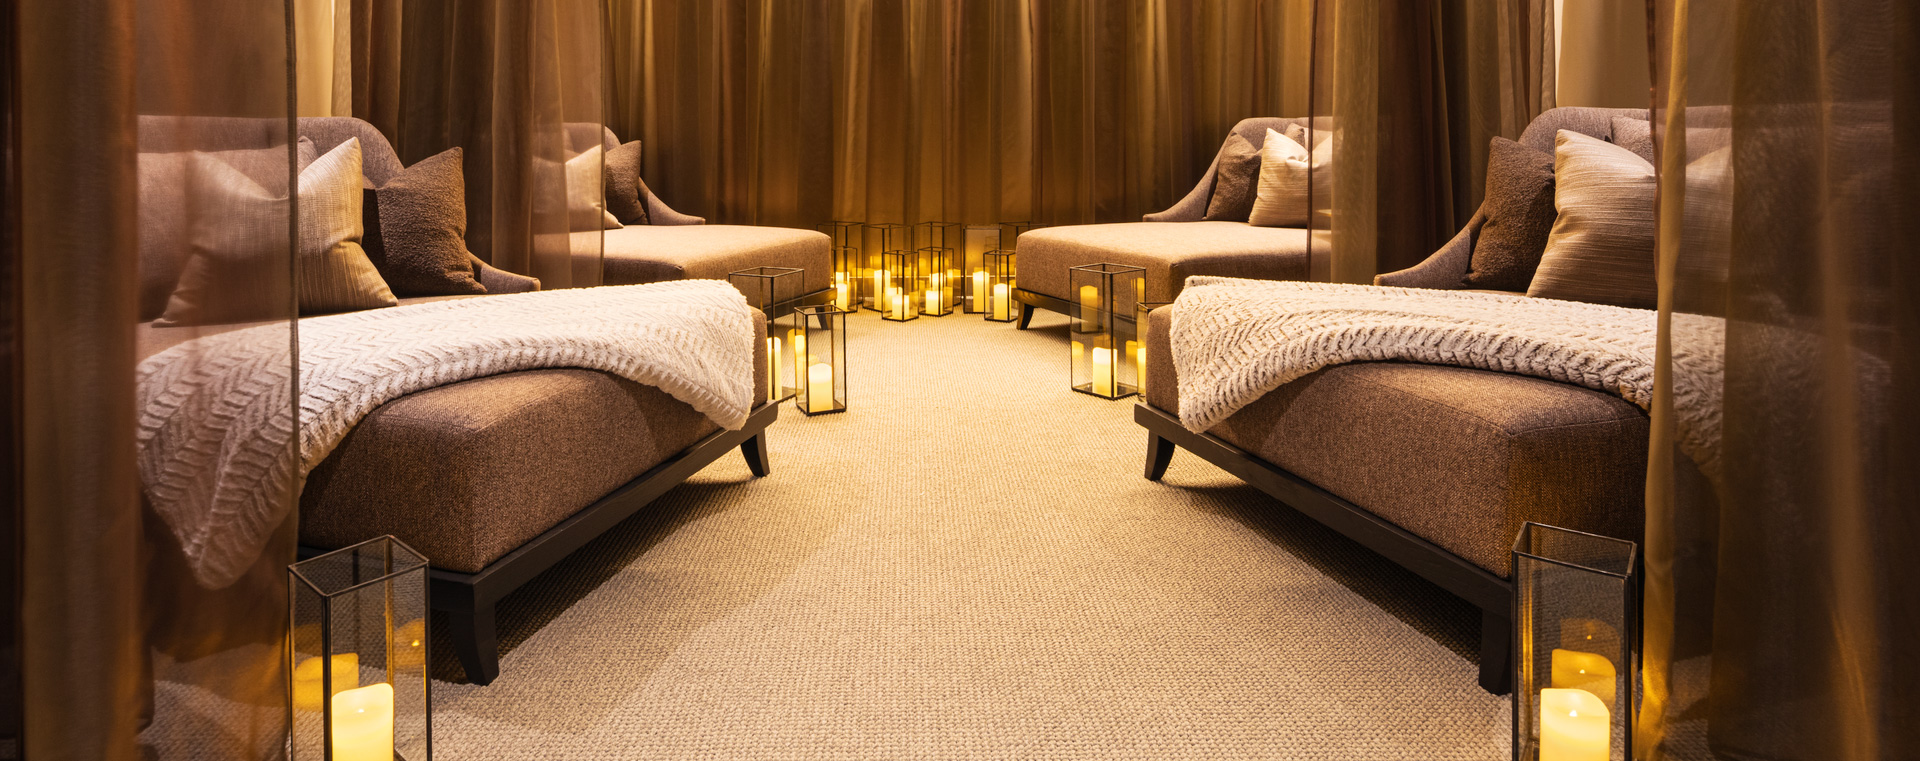 Anda Spa Experience at Hotel Ivy, A Luxury Collection Hotel, Minneapolis